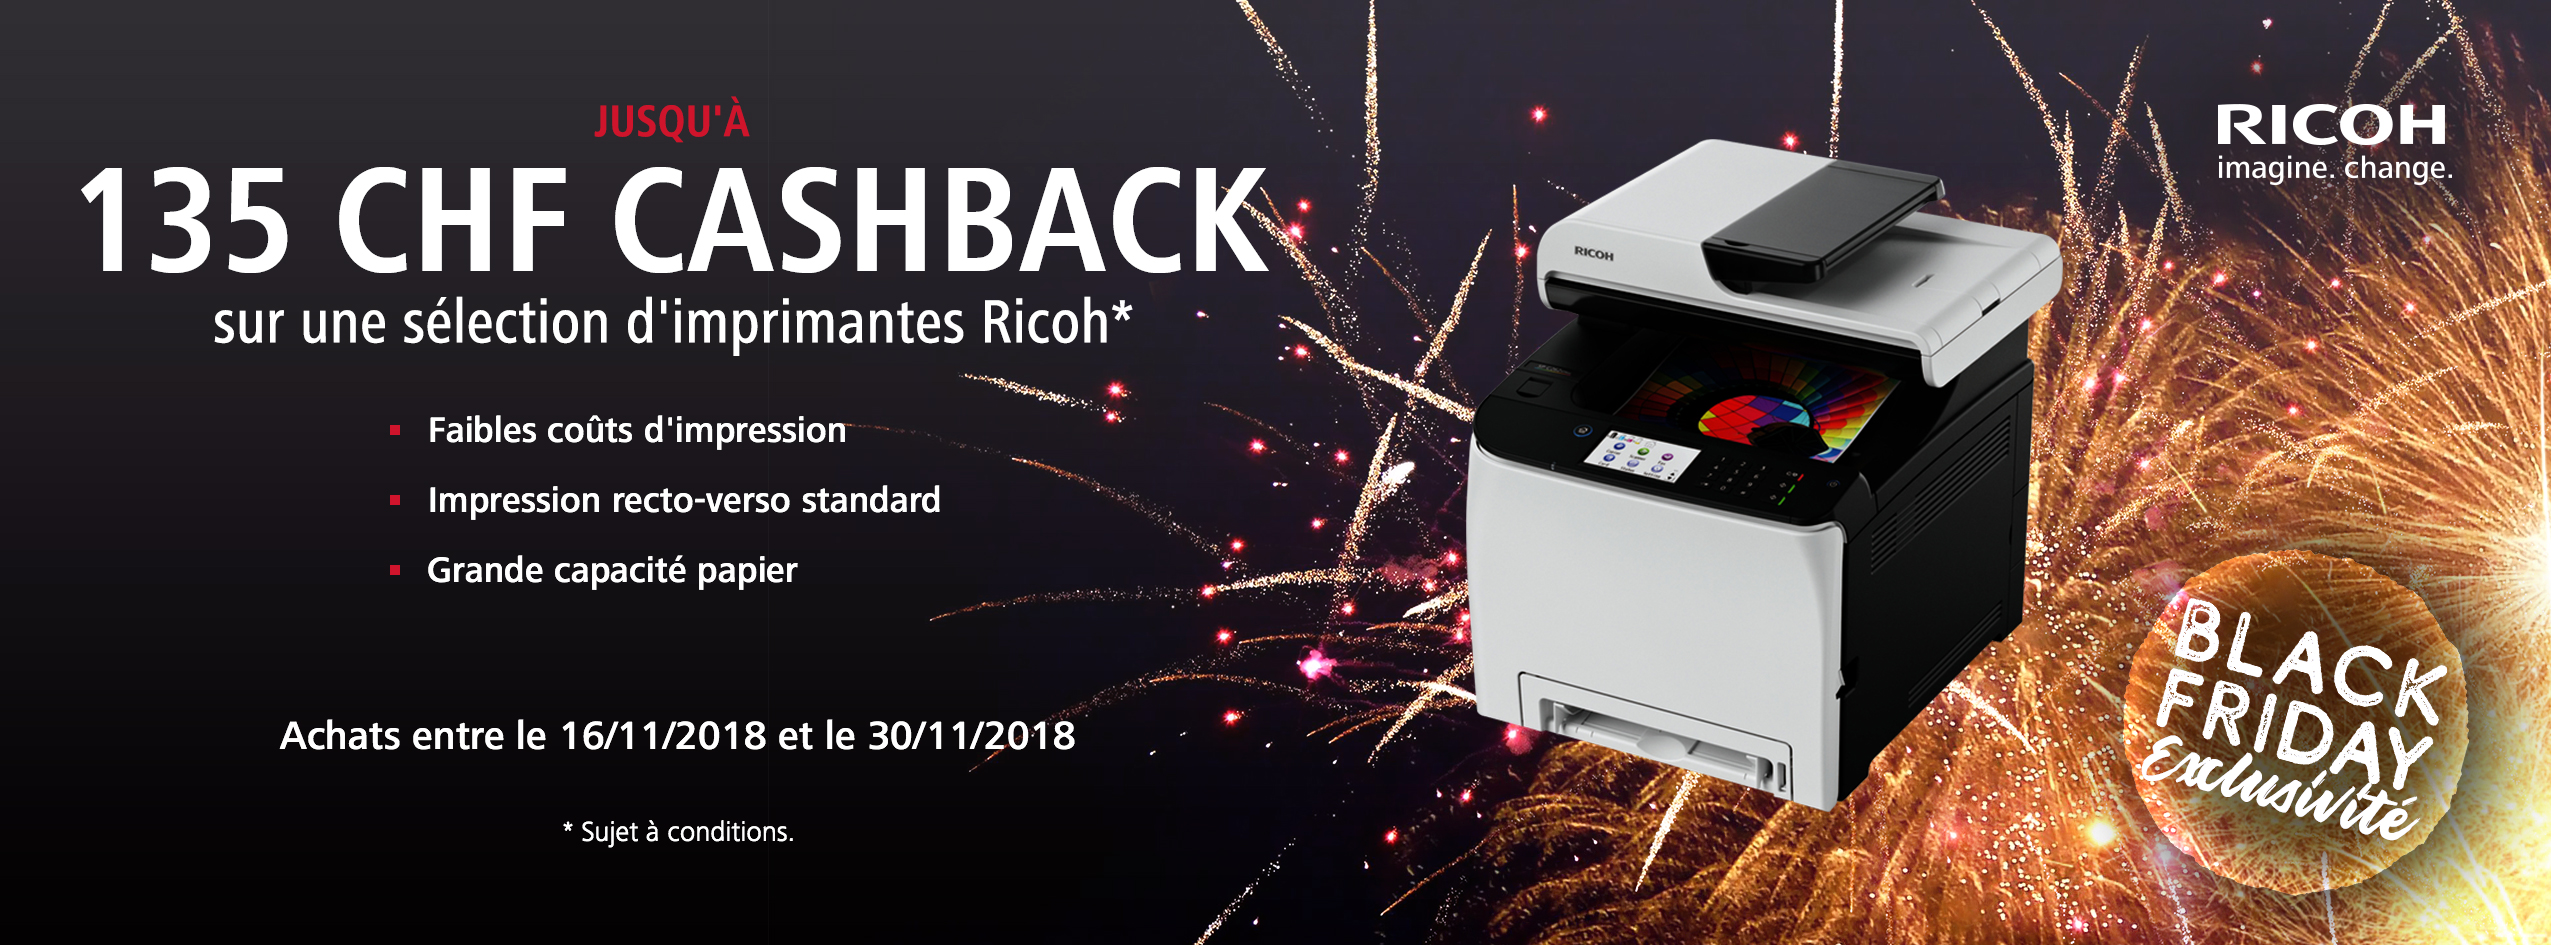 Ricoh Black Friday Accelerator Promotion - CH